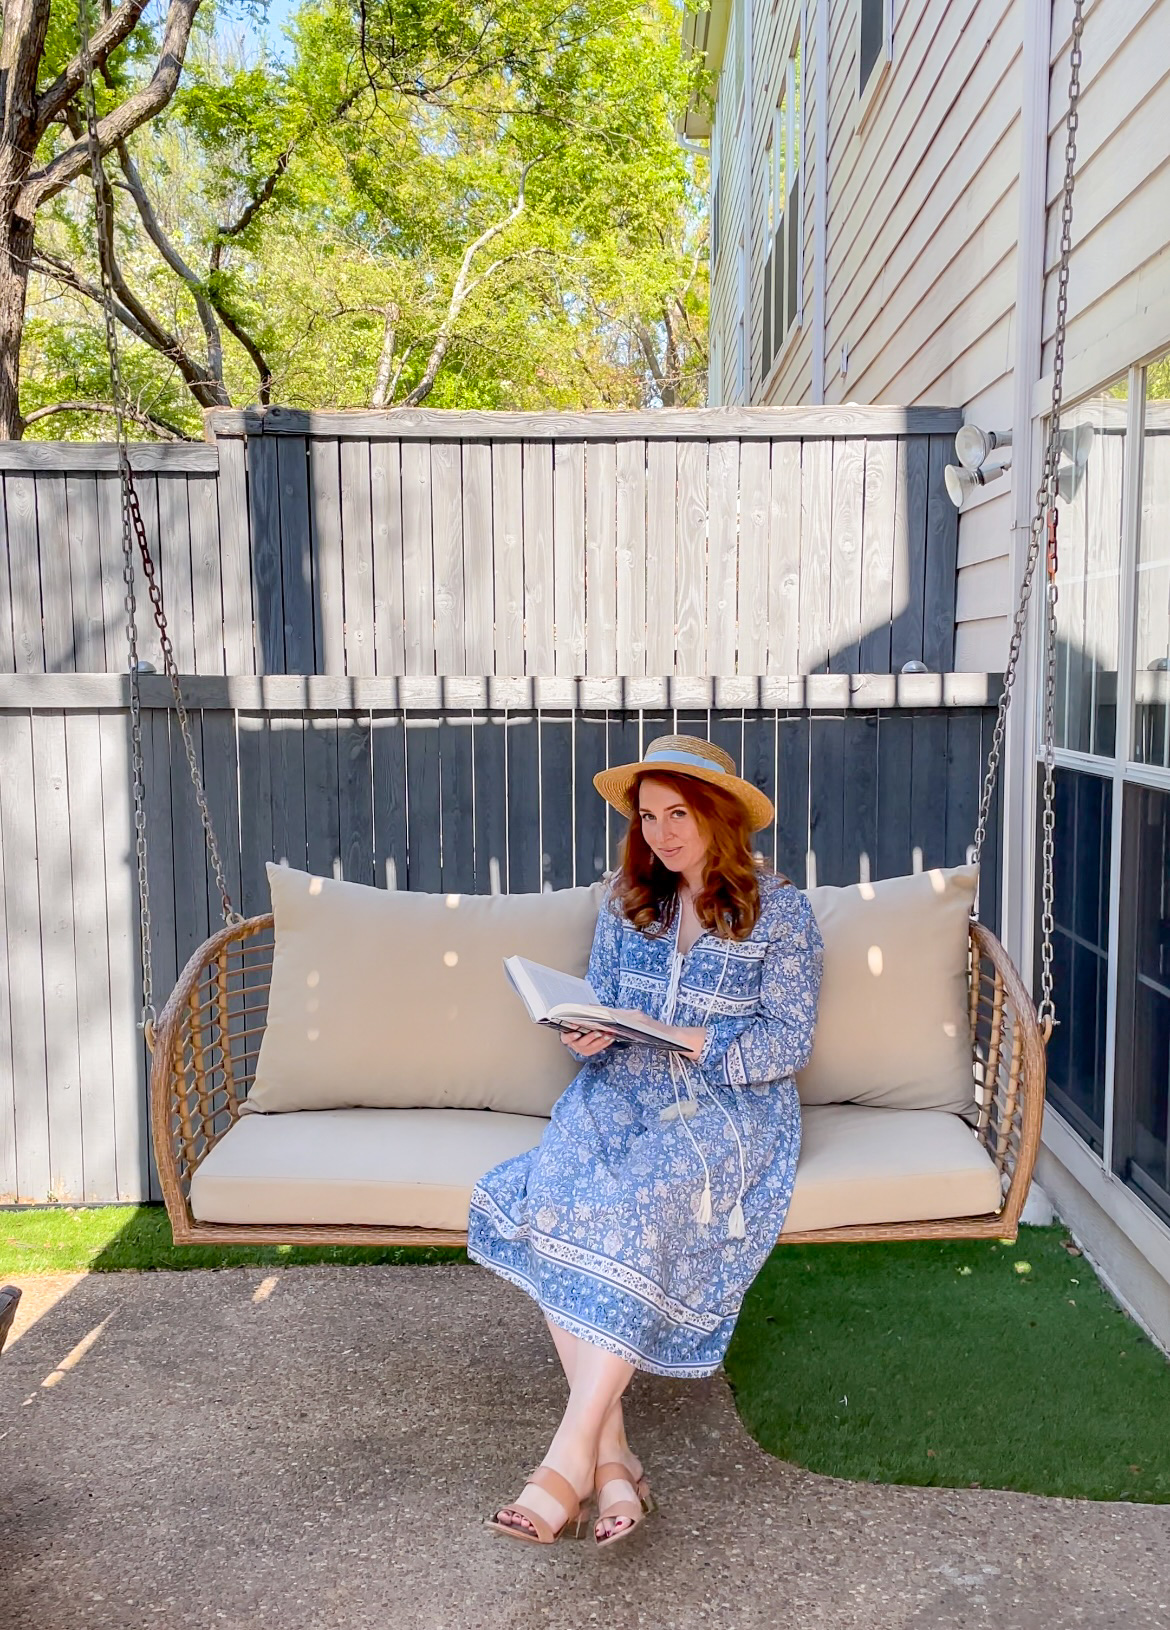 Blogger Amanda Kushner, wearing boater hat and a blue nap dress, sits on a patio swing while reading a book.